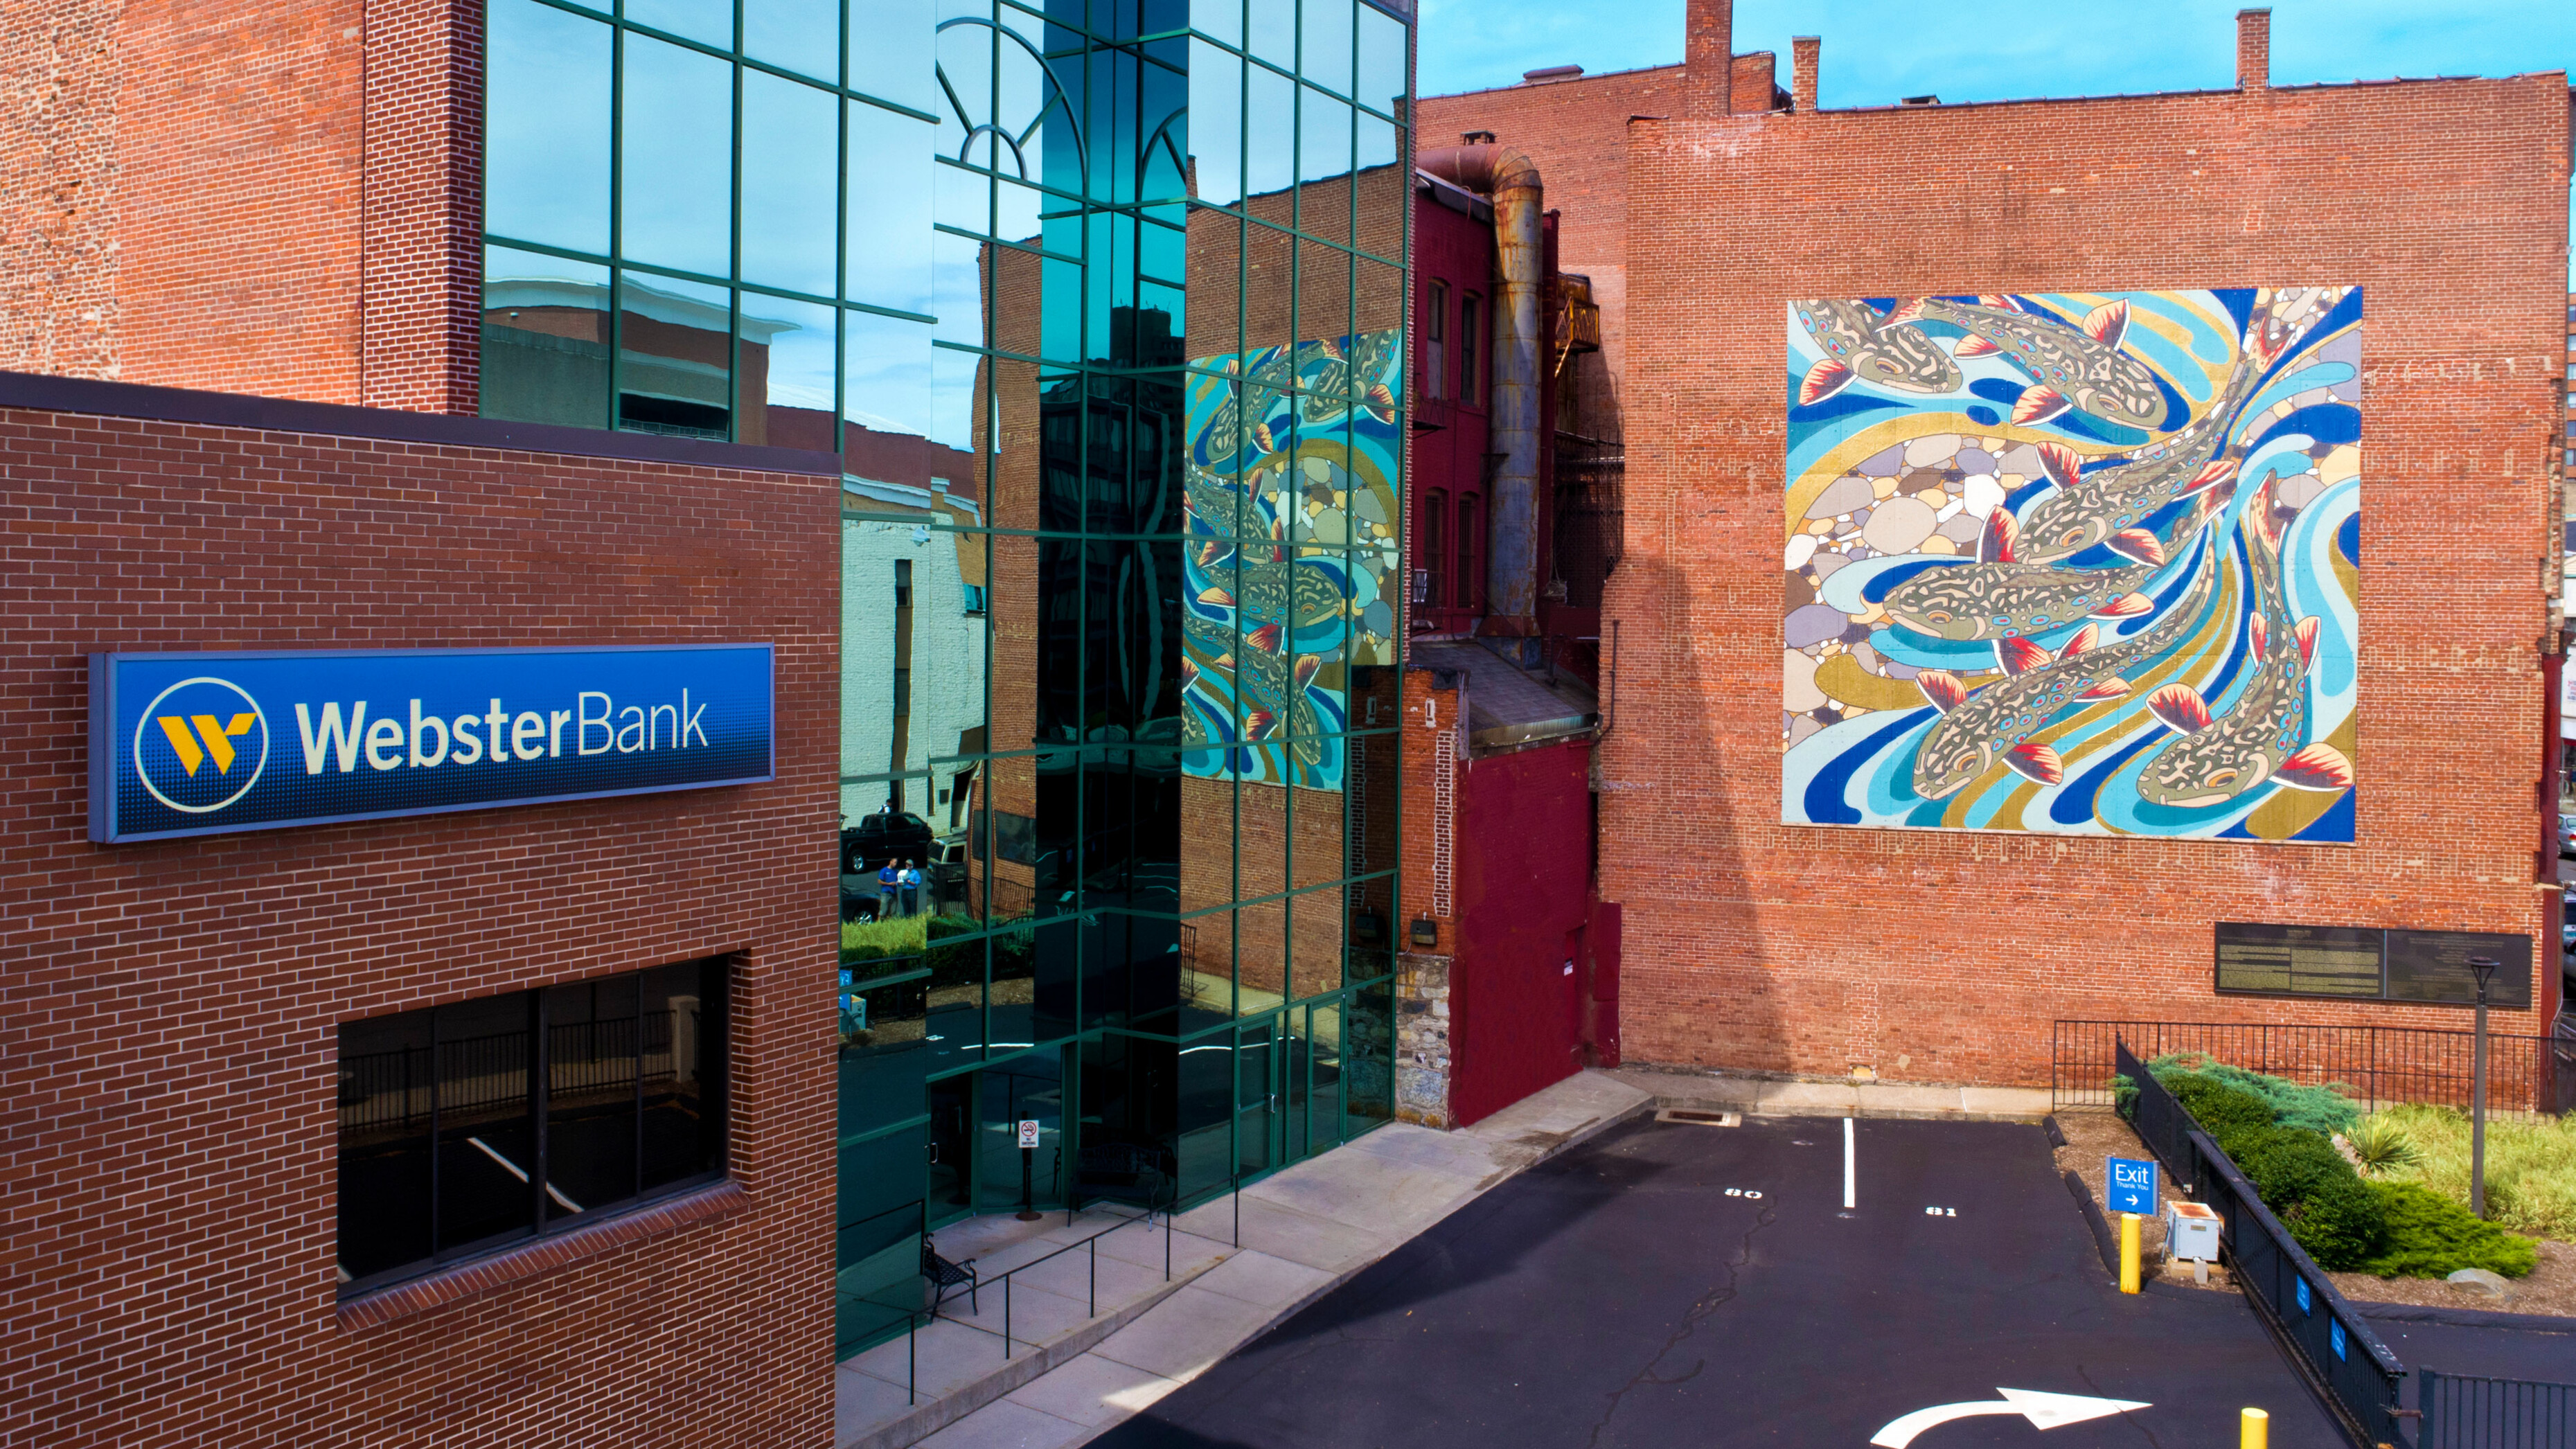 A public art mural on the side of a building in dowtown Waterbury, Connecticut.